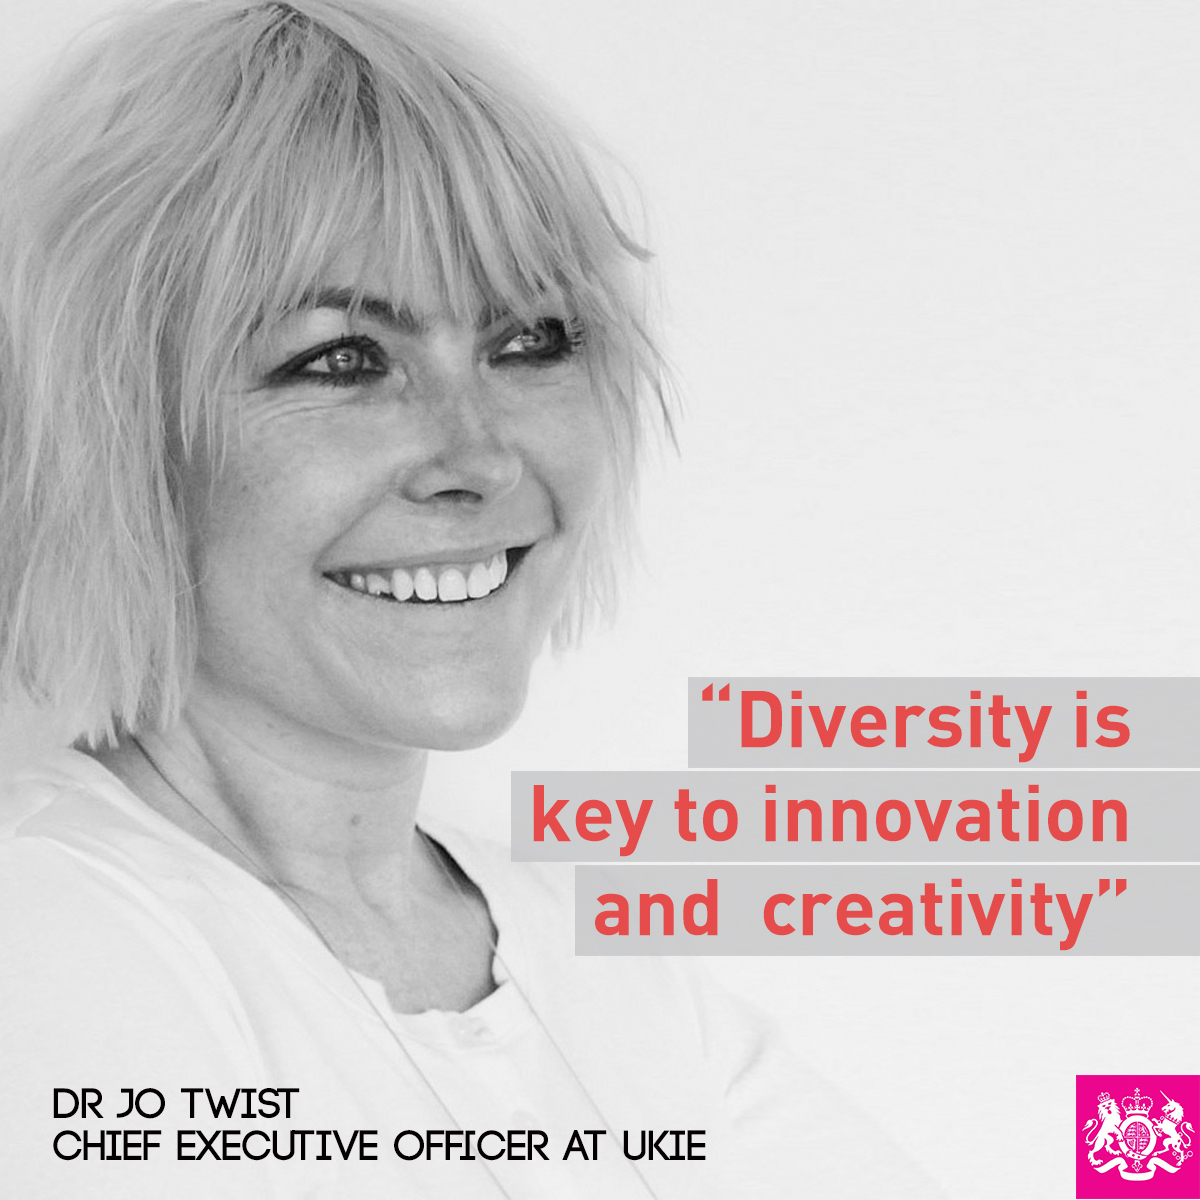 Dr Jo Twist, CEO UKIE